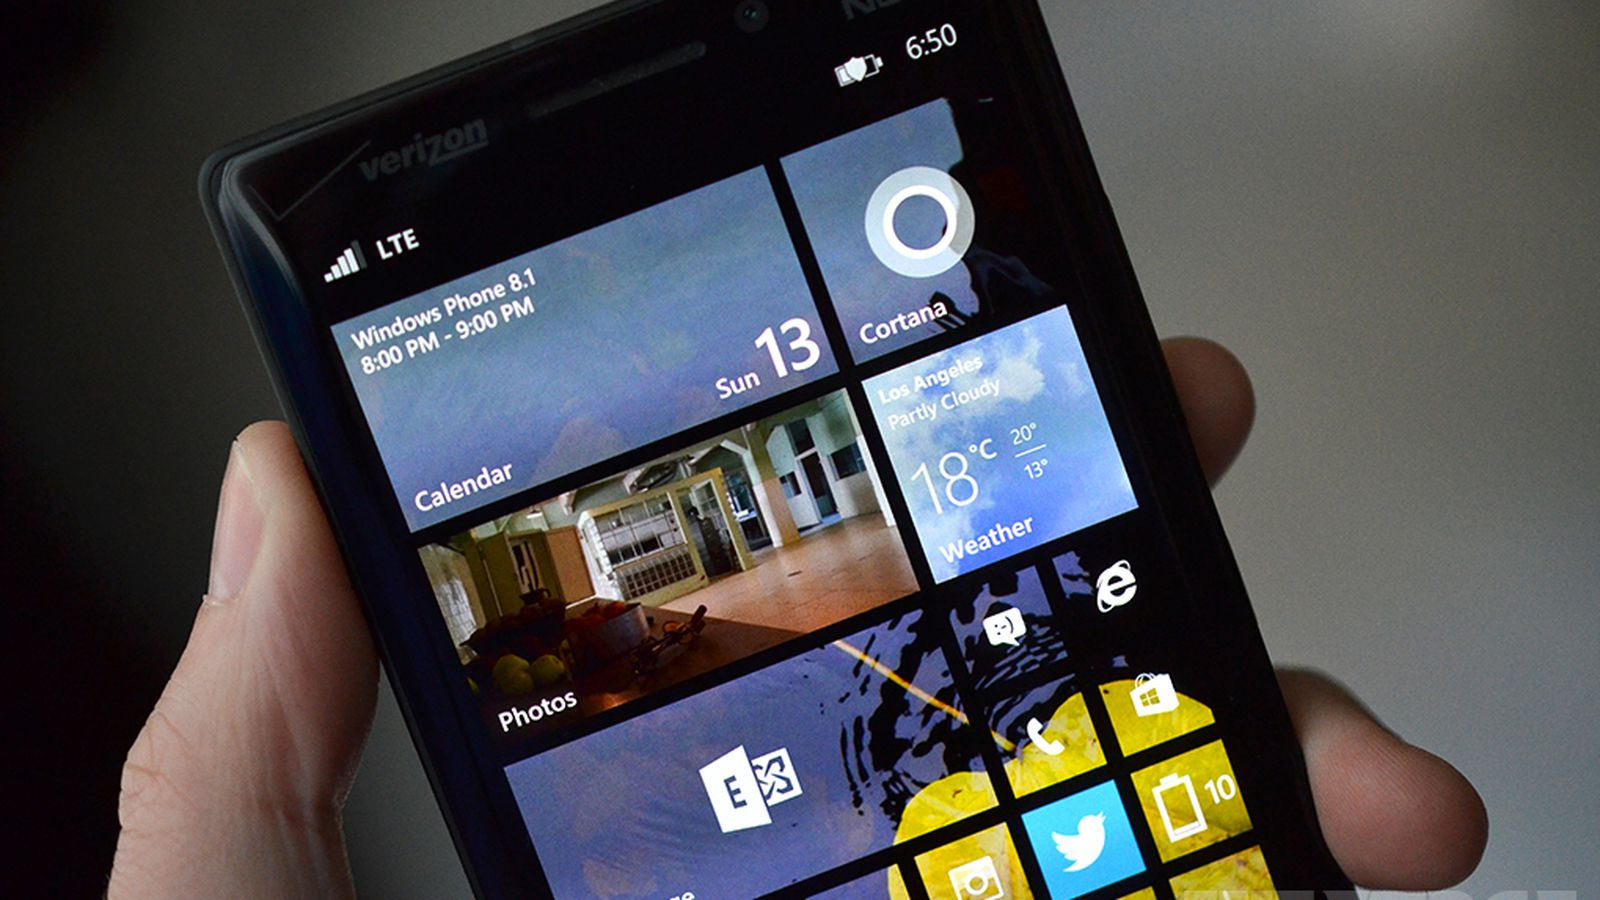 Windows Phone 8.1 now available to download